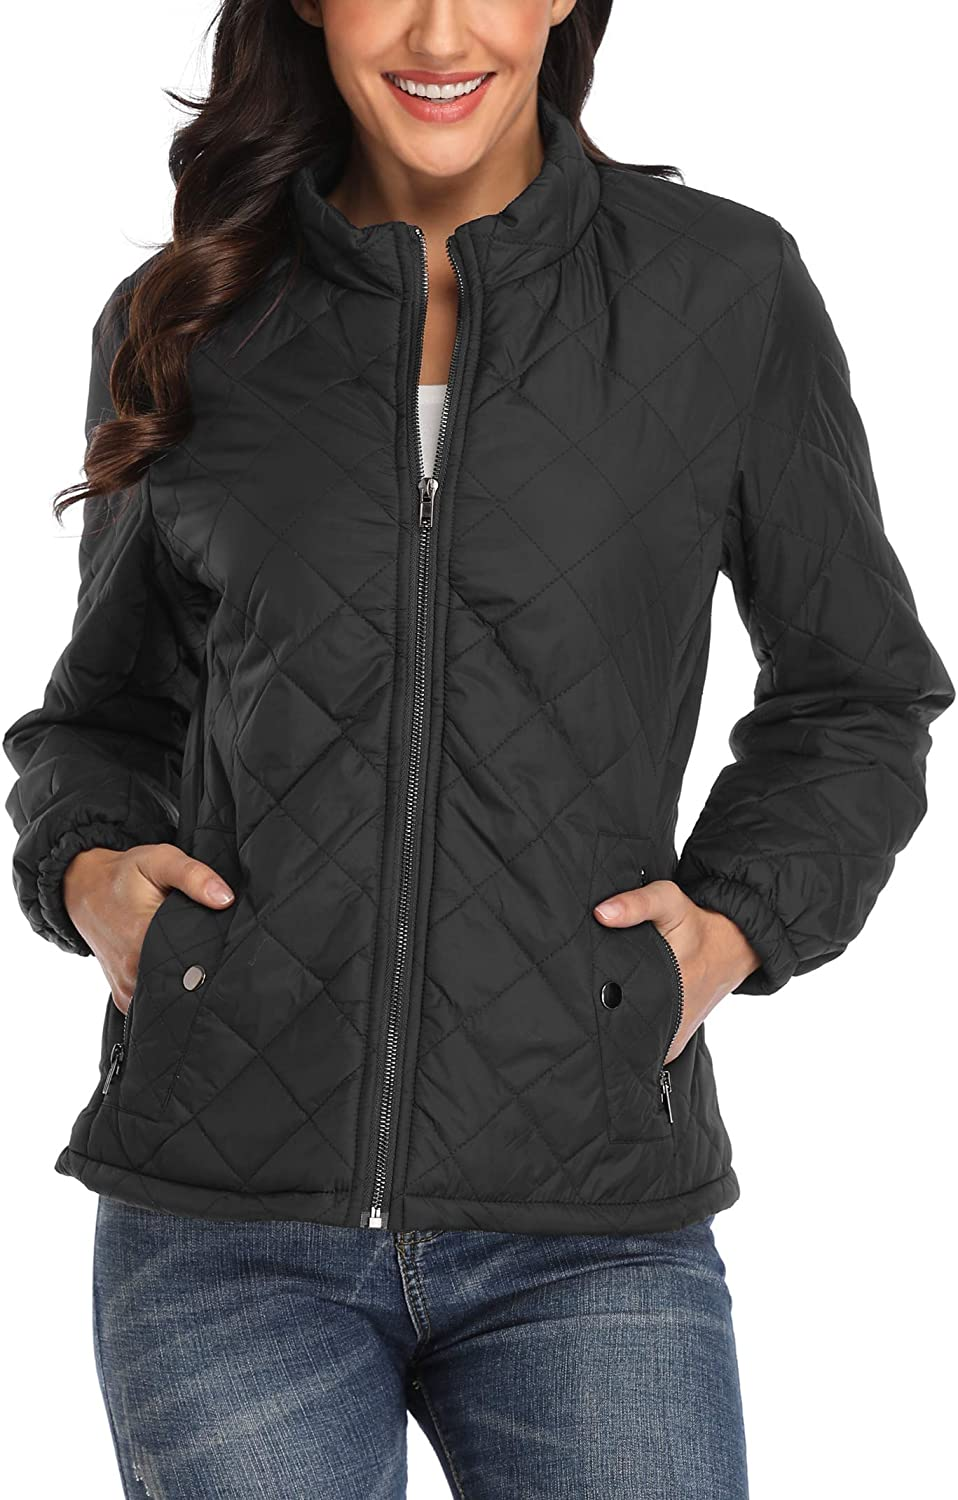 MISS MOLY Women Quilted Jackets Zip Up Stand Collar Lightweight Padded Jacket Winter Outwear